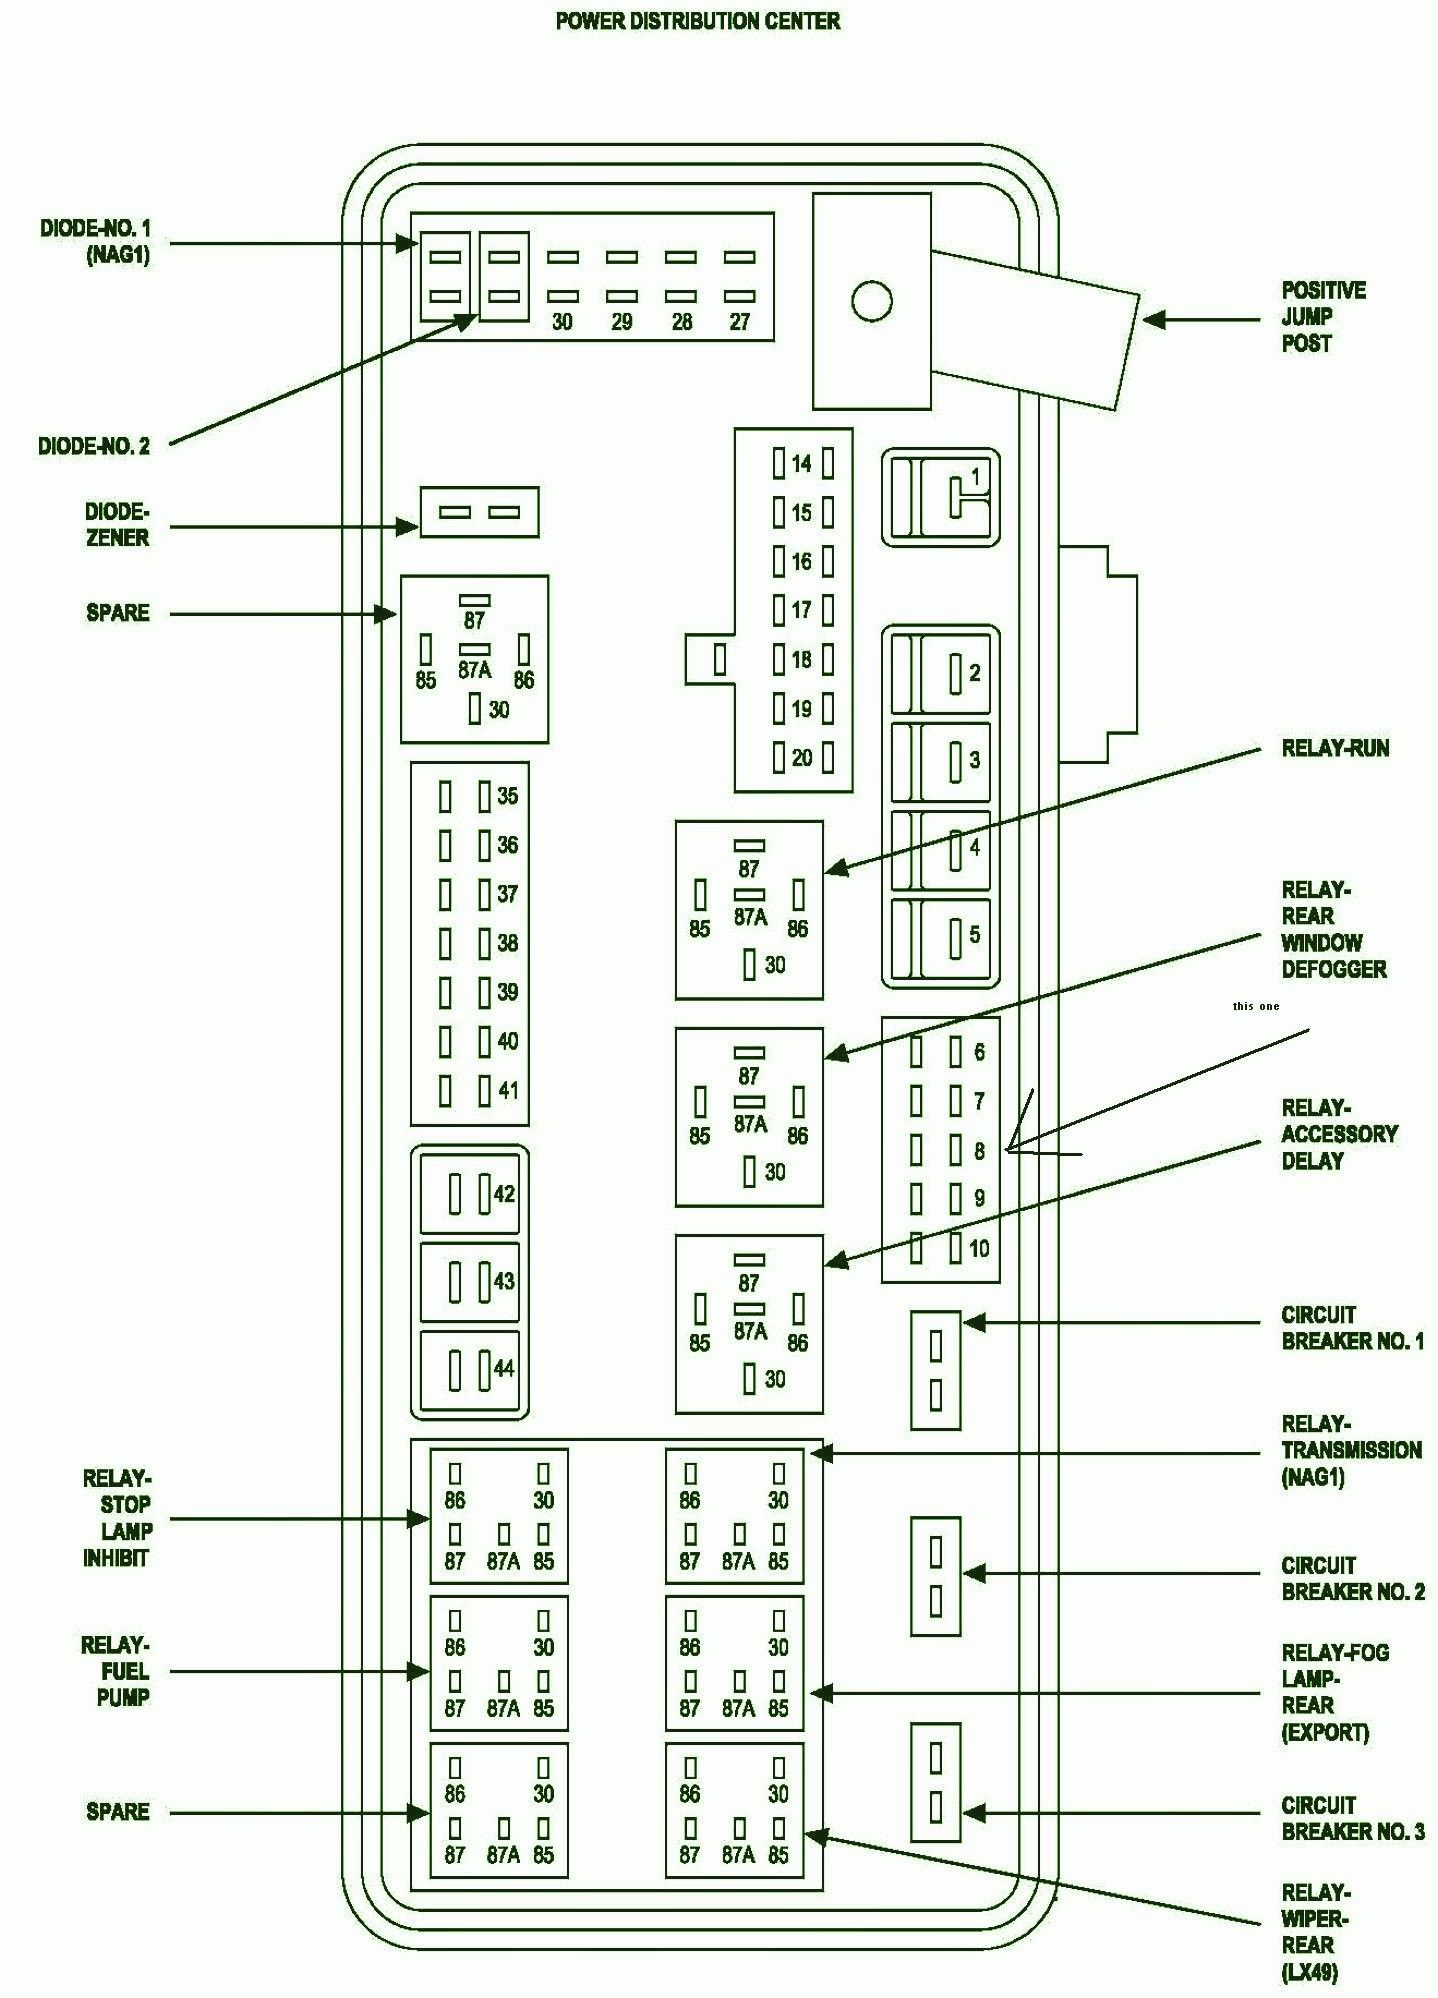 Unique Wiring Diagram 2005 Dodge Ram 1500 Diagram Diagramsample Diagramtemplate Wiringdiagram Diagramchart Worksheet Wo Dodge Ram 1500 Dodge Ram Diagram